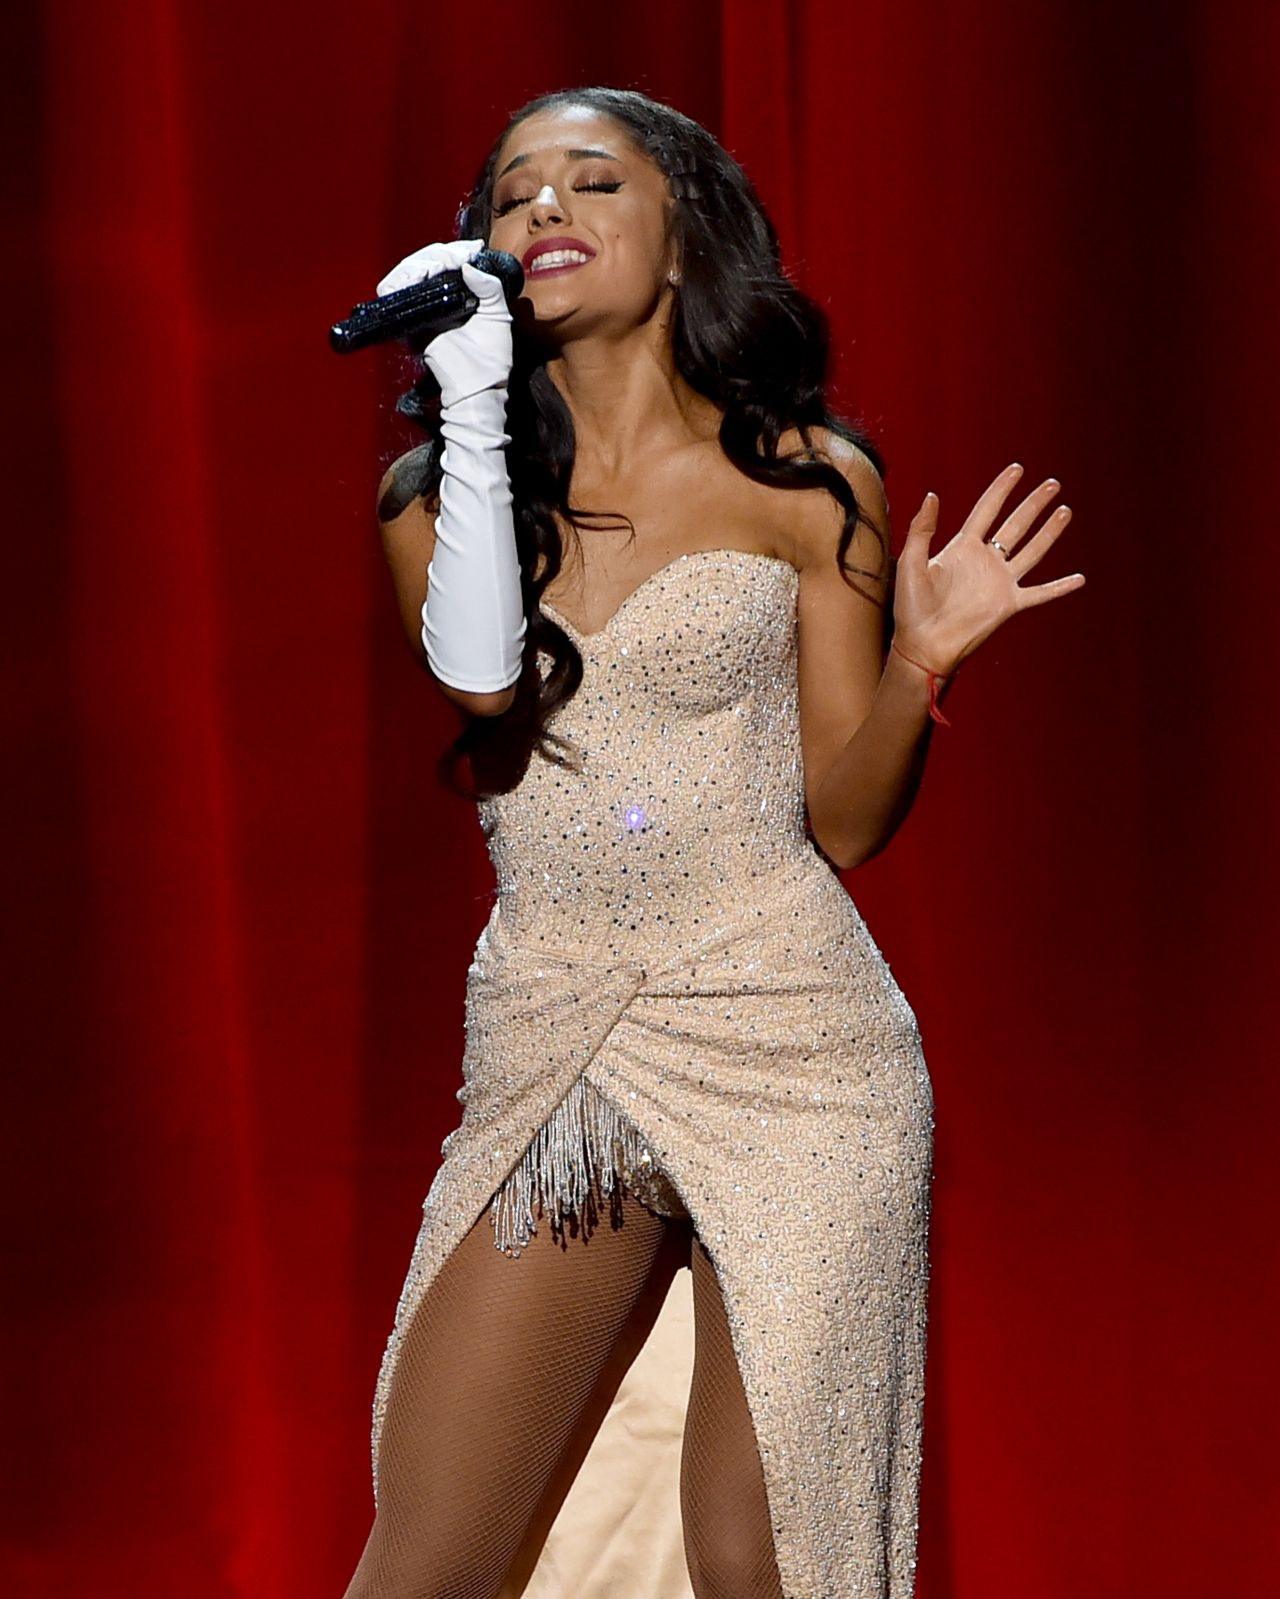 Ariana Grande Performs At 2015 American Music Awards In